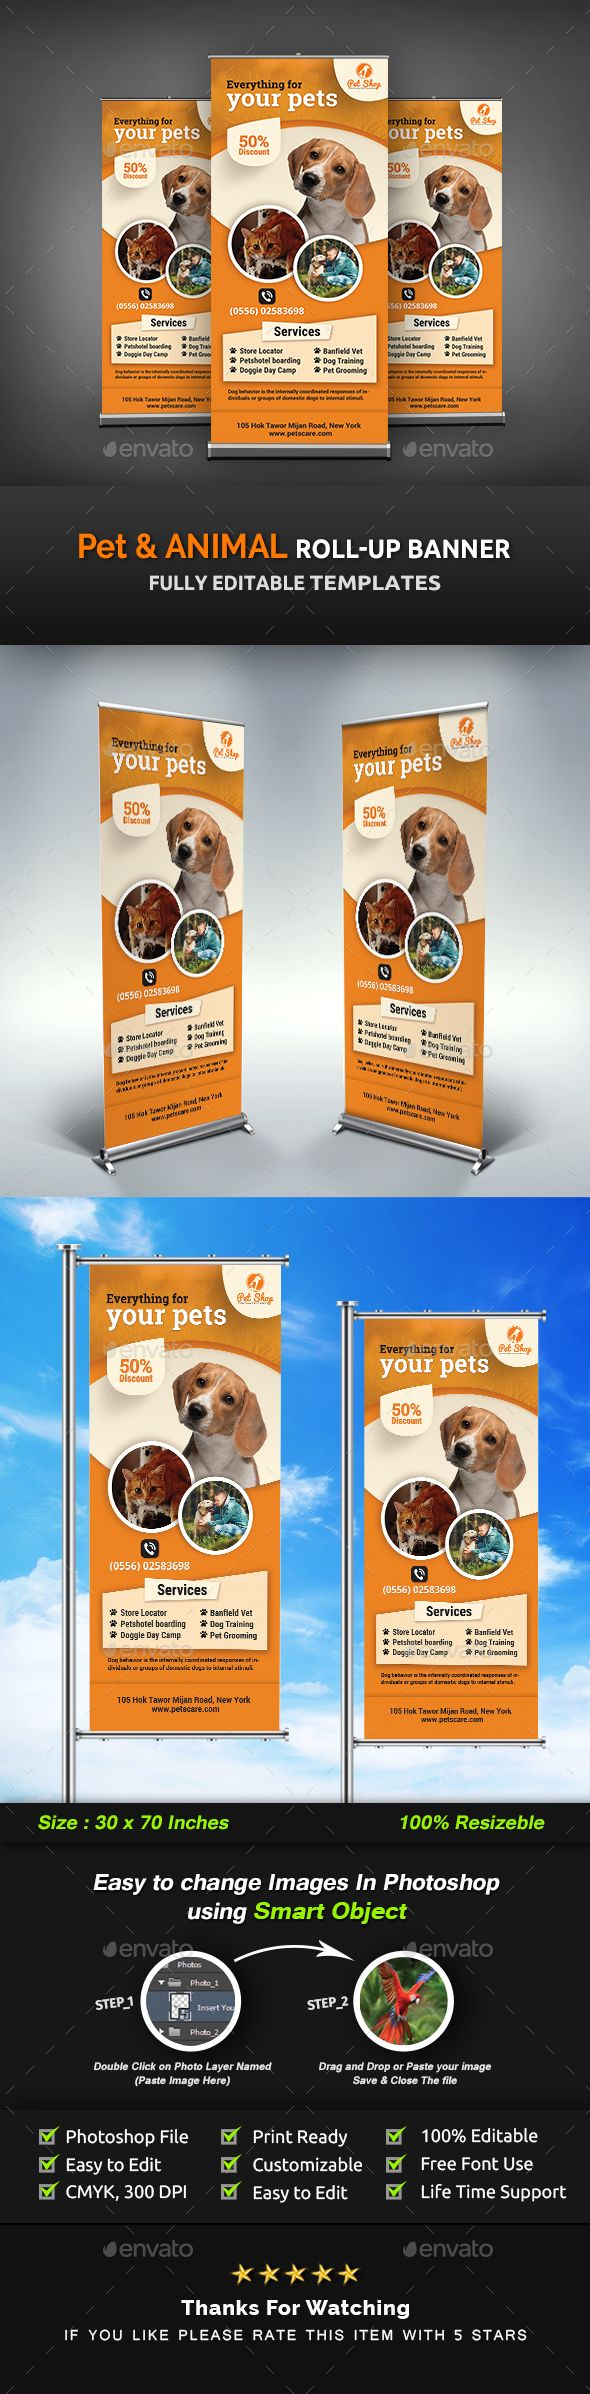 Pet Roll Up Banner Animal Roll Up Banner Templates Rollup Banner Banner Template Banner